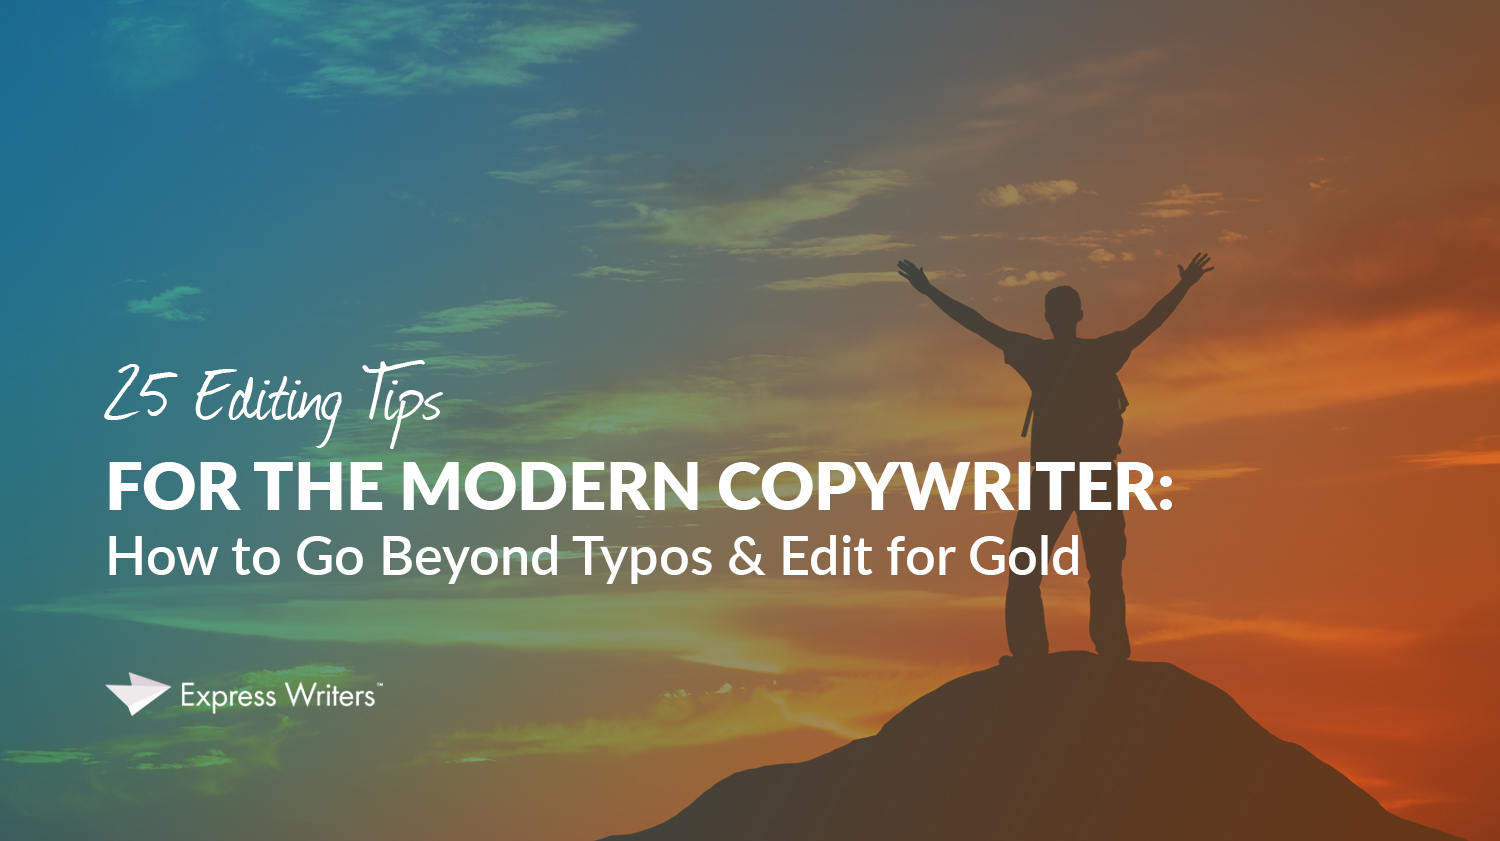 modern copywriter, modern copywriting, editing tips for copywriters